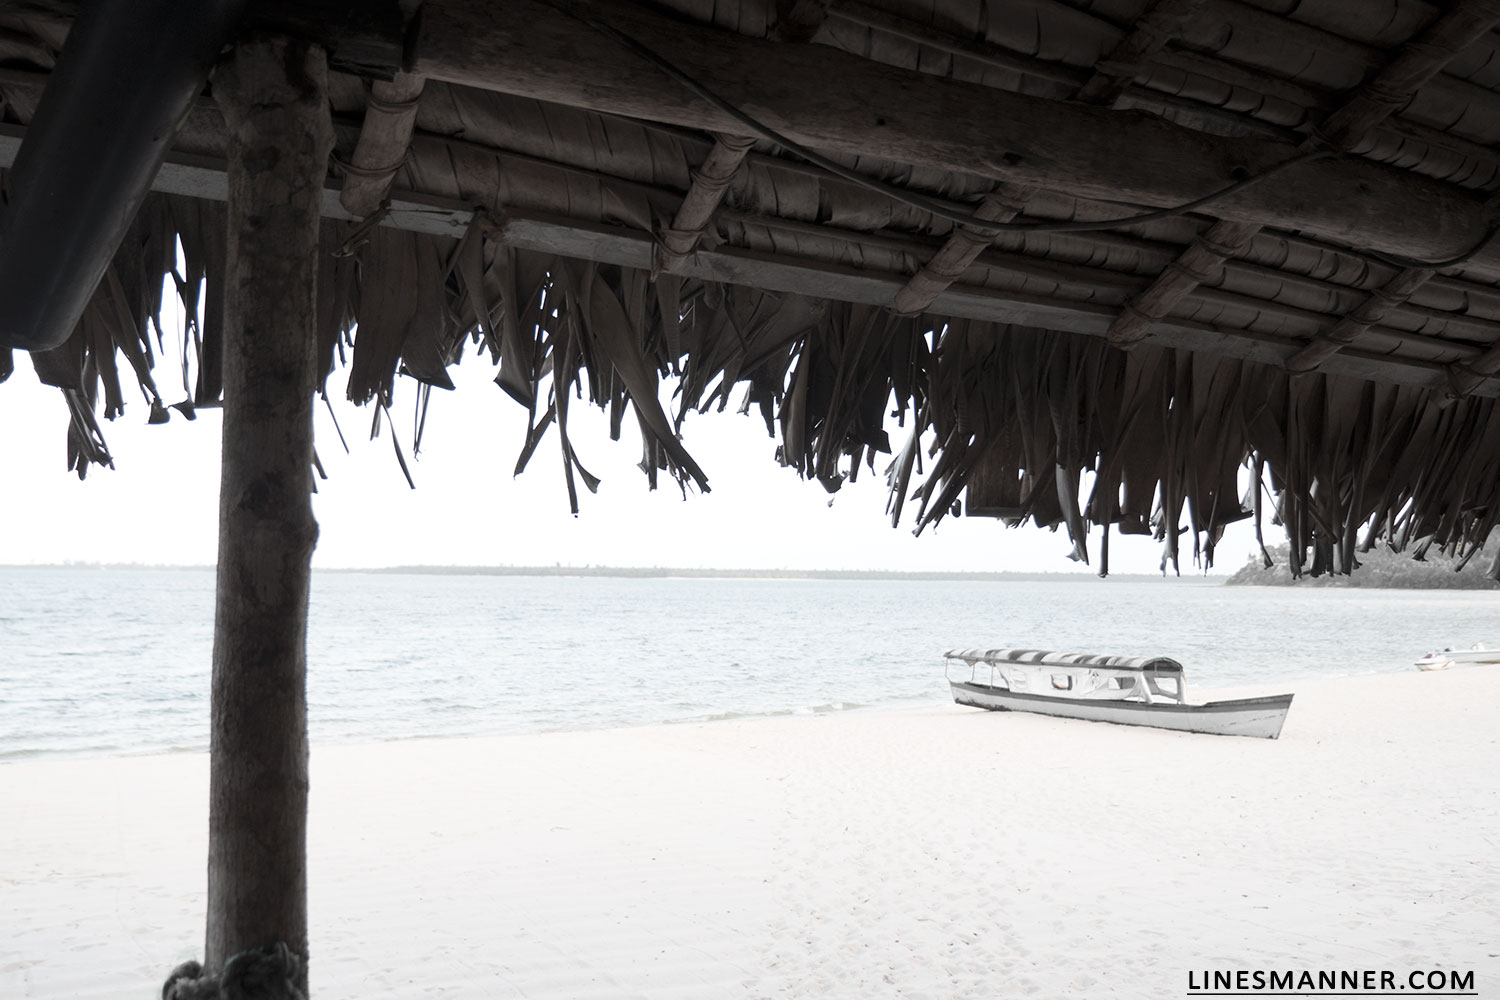 Lines-Manner-Explore-Travel-World-Places-Ocean-Madagascar-Island-Photography-Inspiration-Sea-Tropical-14